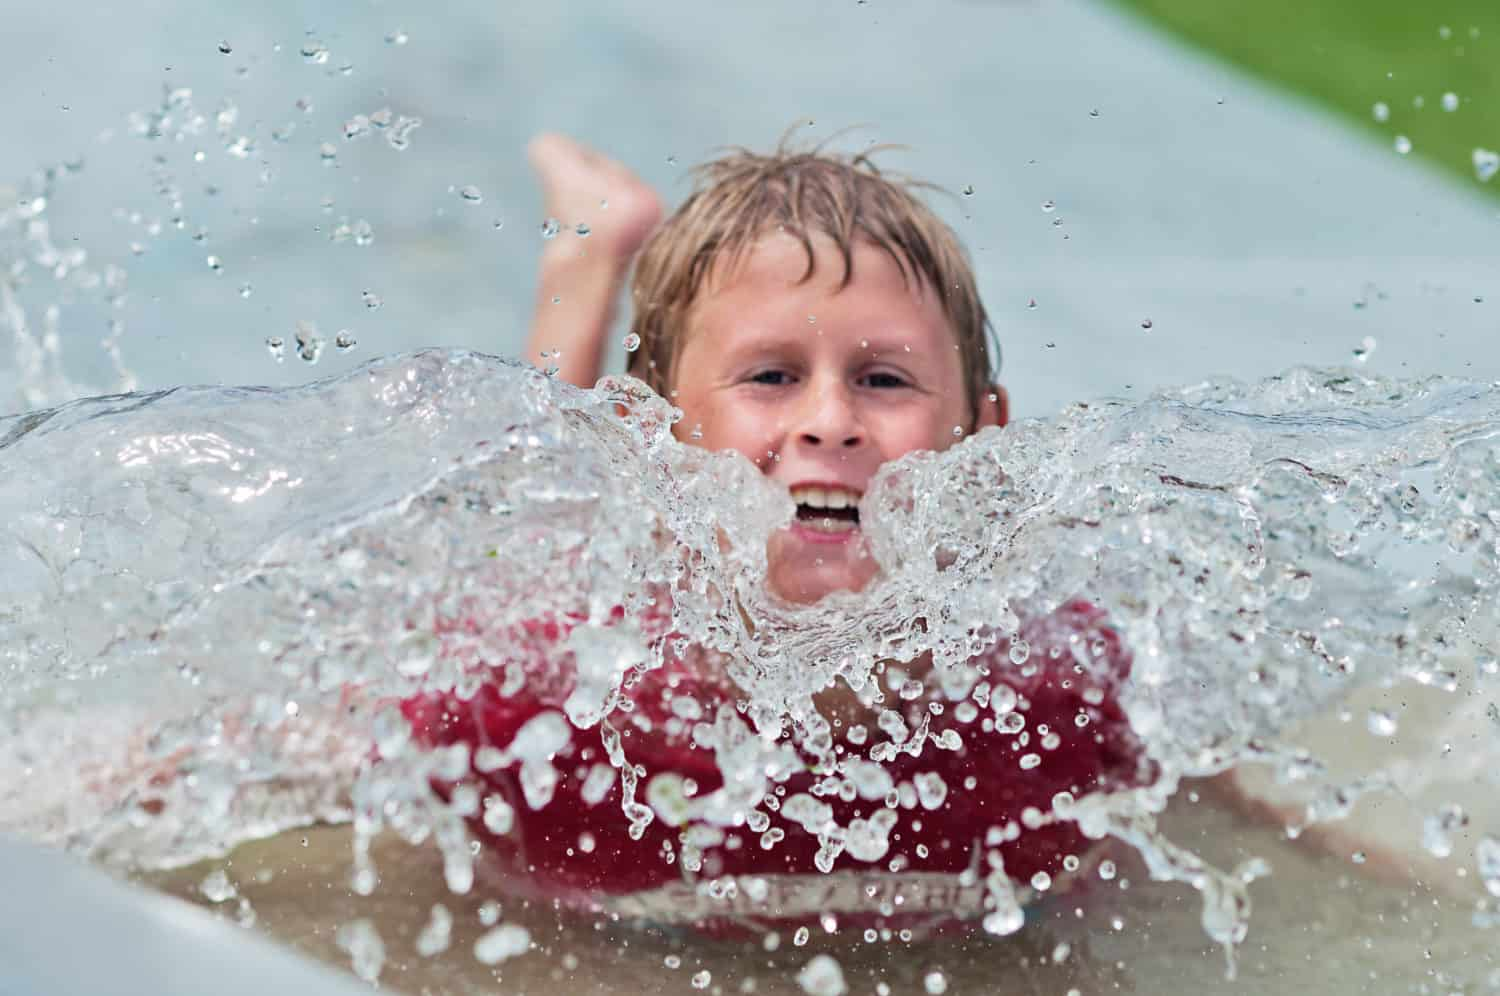 Young boy splashing in a water slide